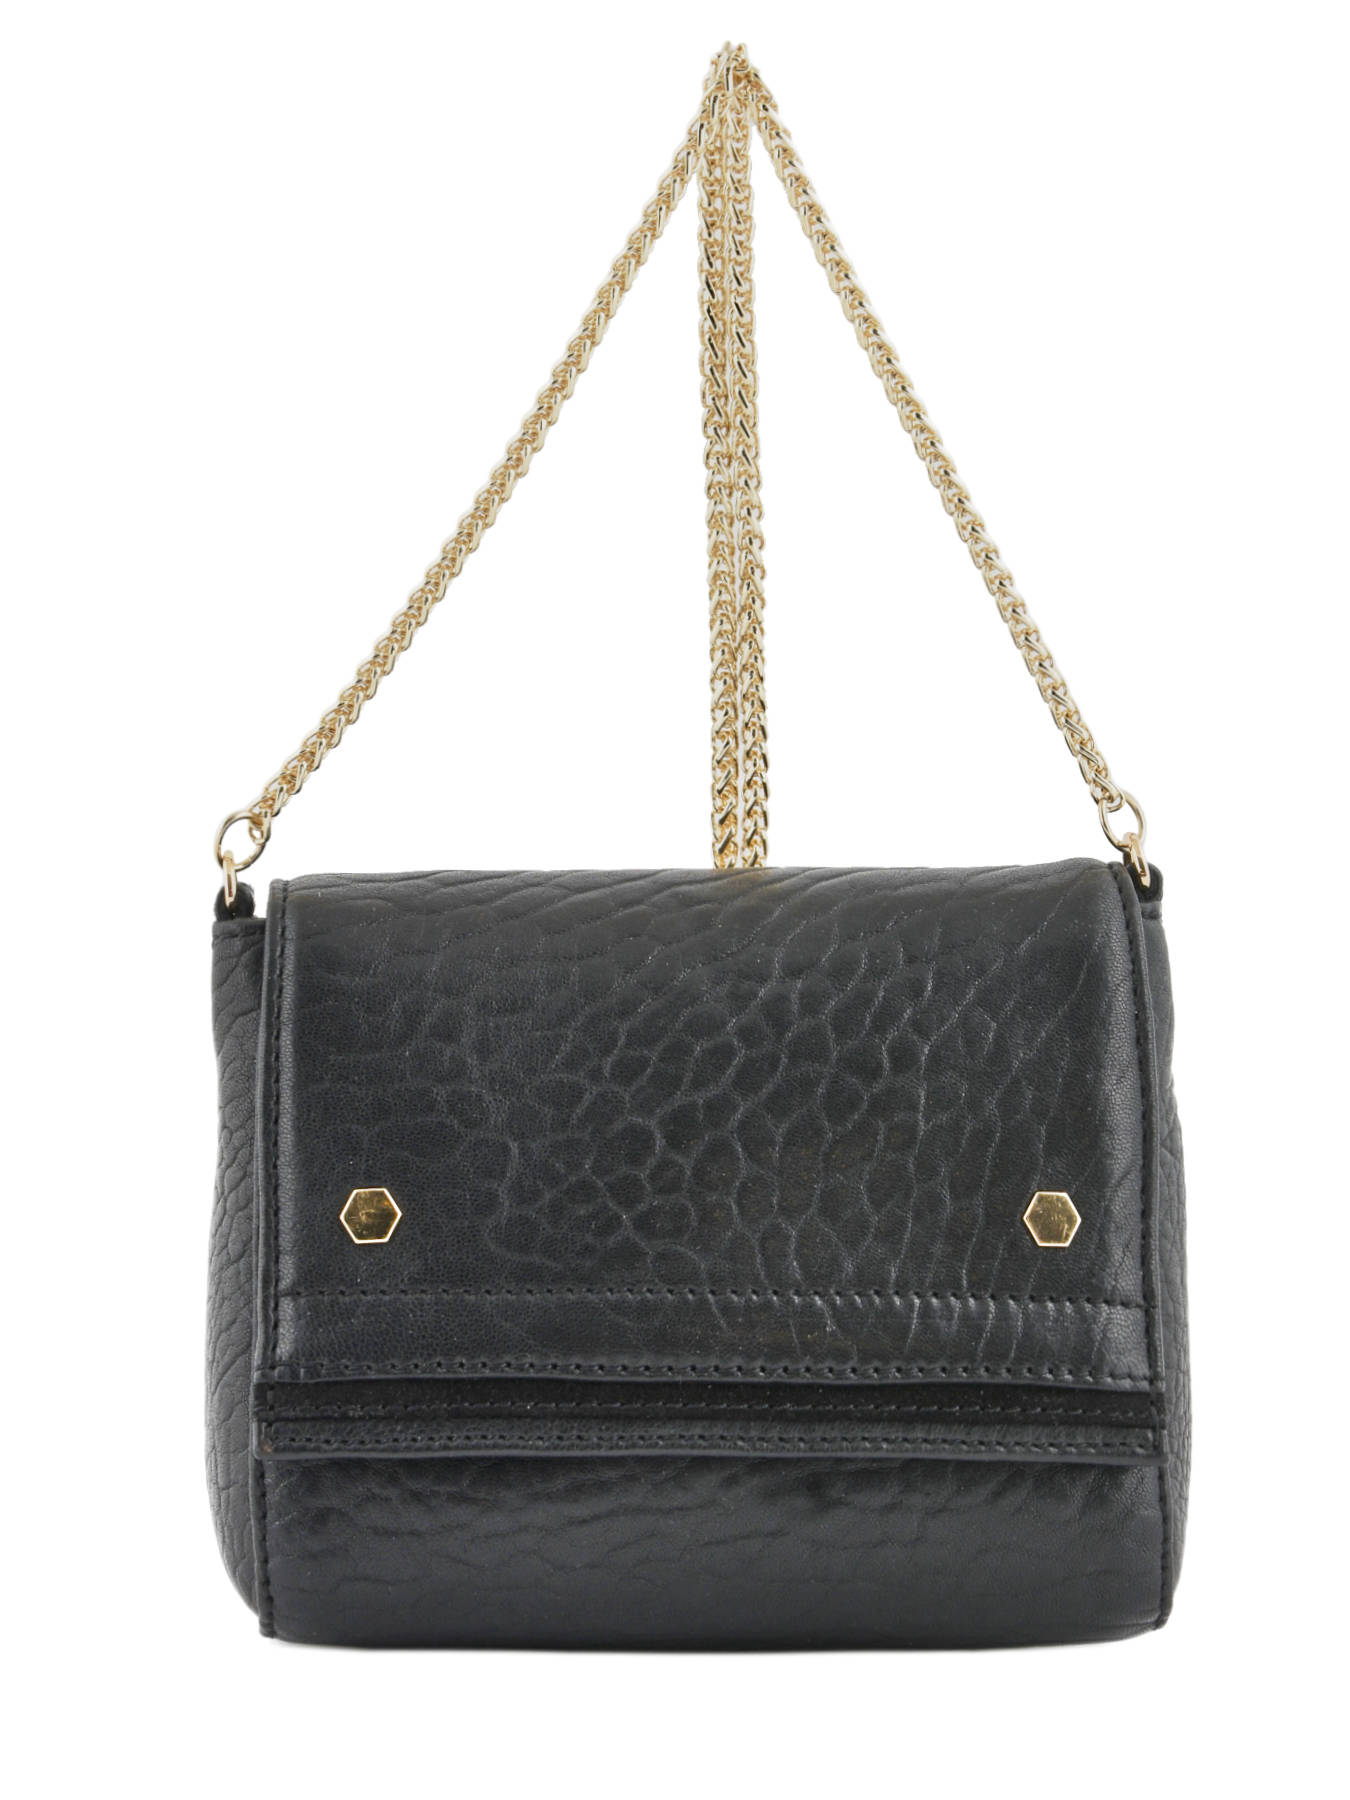 85e0e172456c ... Crossbody Bag Strawberry Leather Petite mendigote Black strawberry  CLERY ...